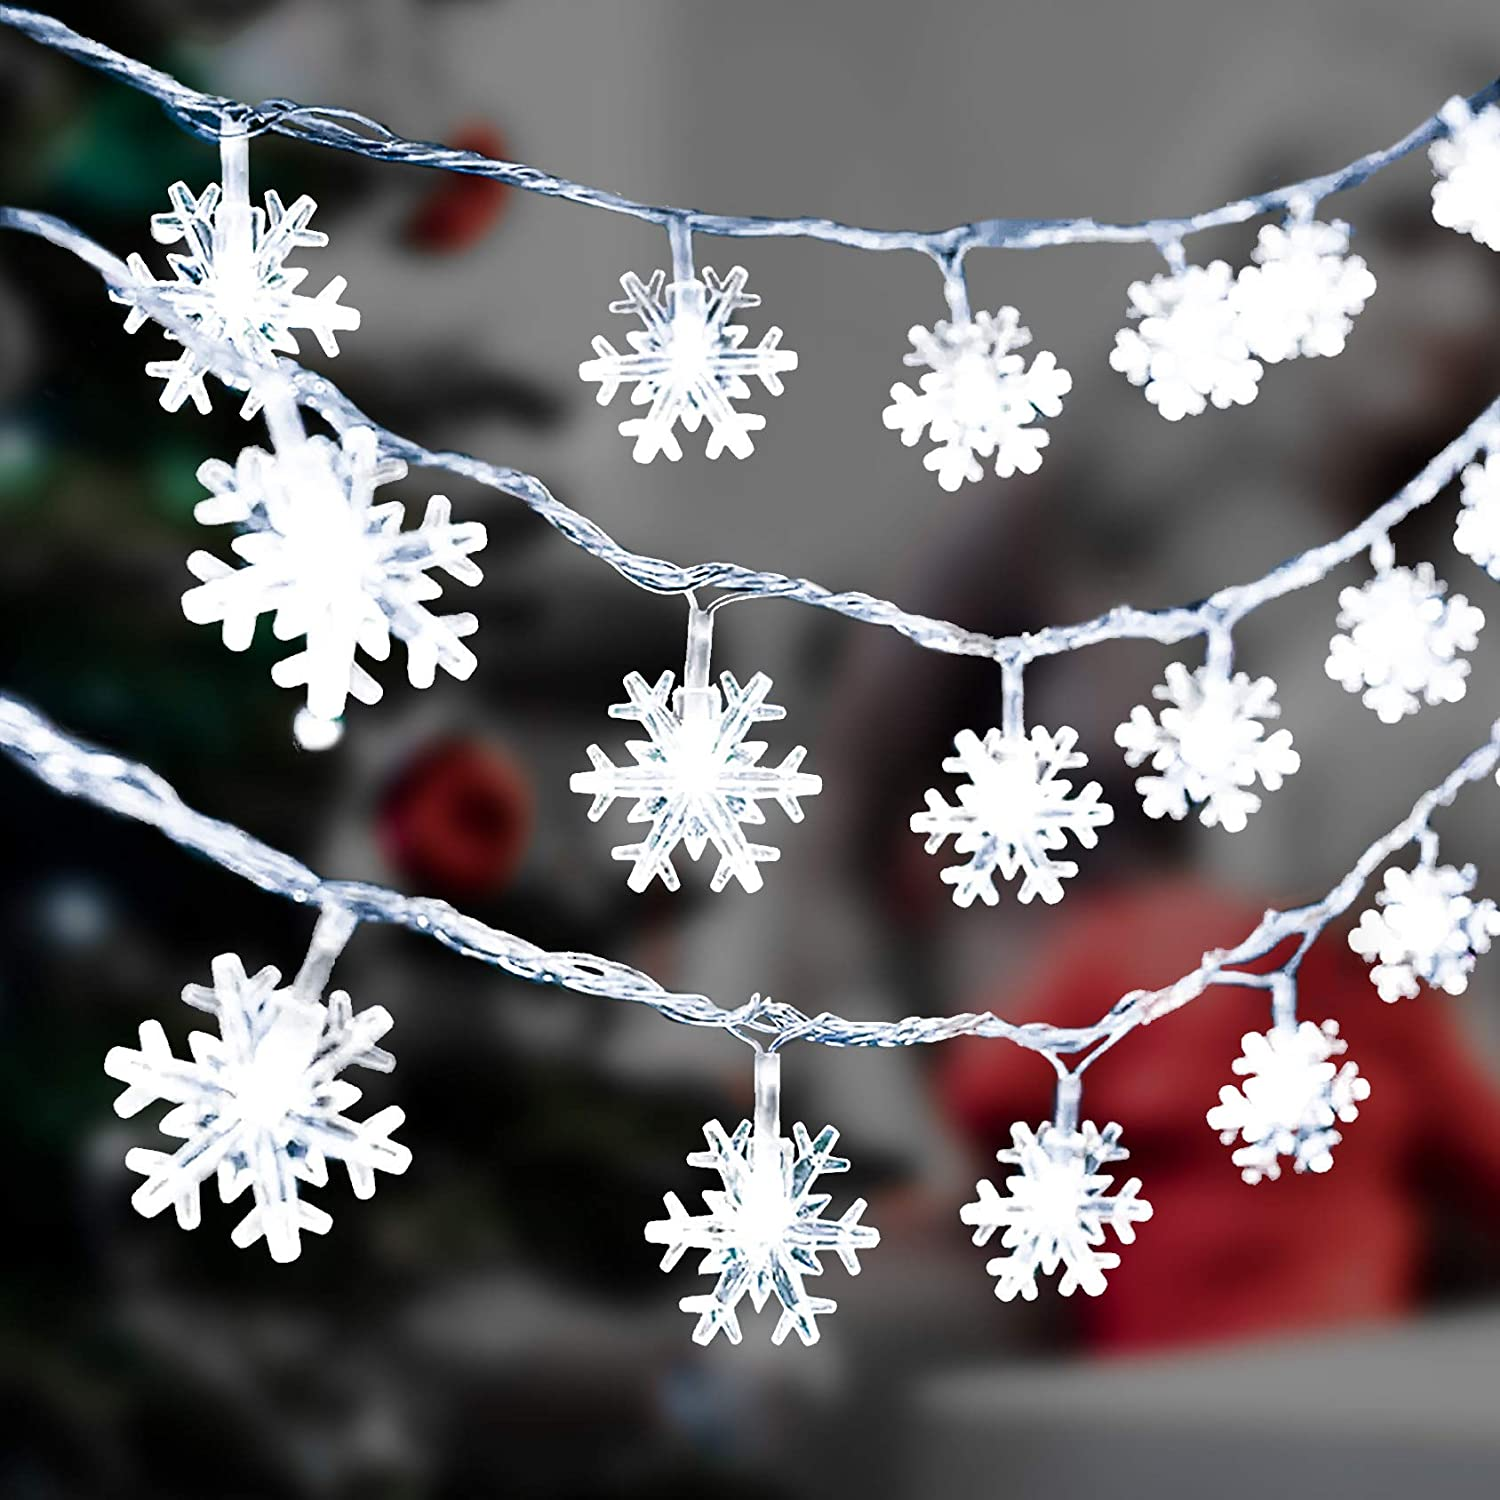 Aonsen DANTENG Christmas Lights, Snowflake Lights 20ft 40 LED Fairy Lights Battery Operated Waterproof Decorative for Xmas Garden Patio Bedroom Party Decor Indoor Outdoor Hanging Snowflakes Decor…